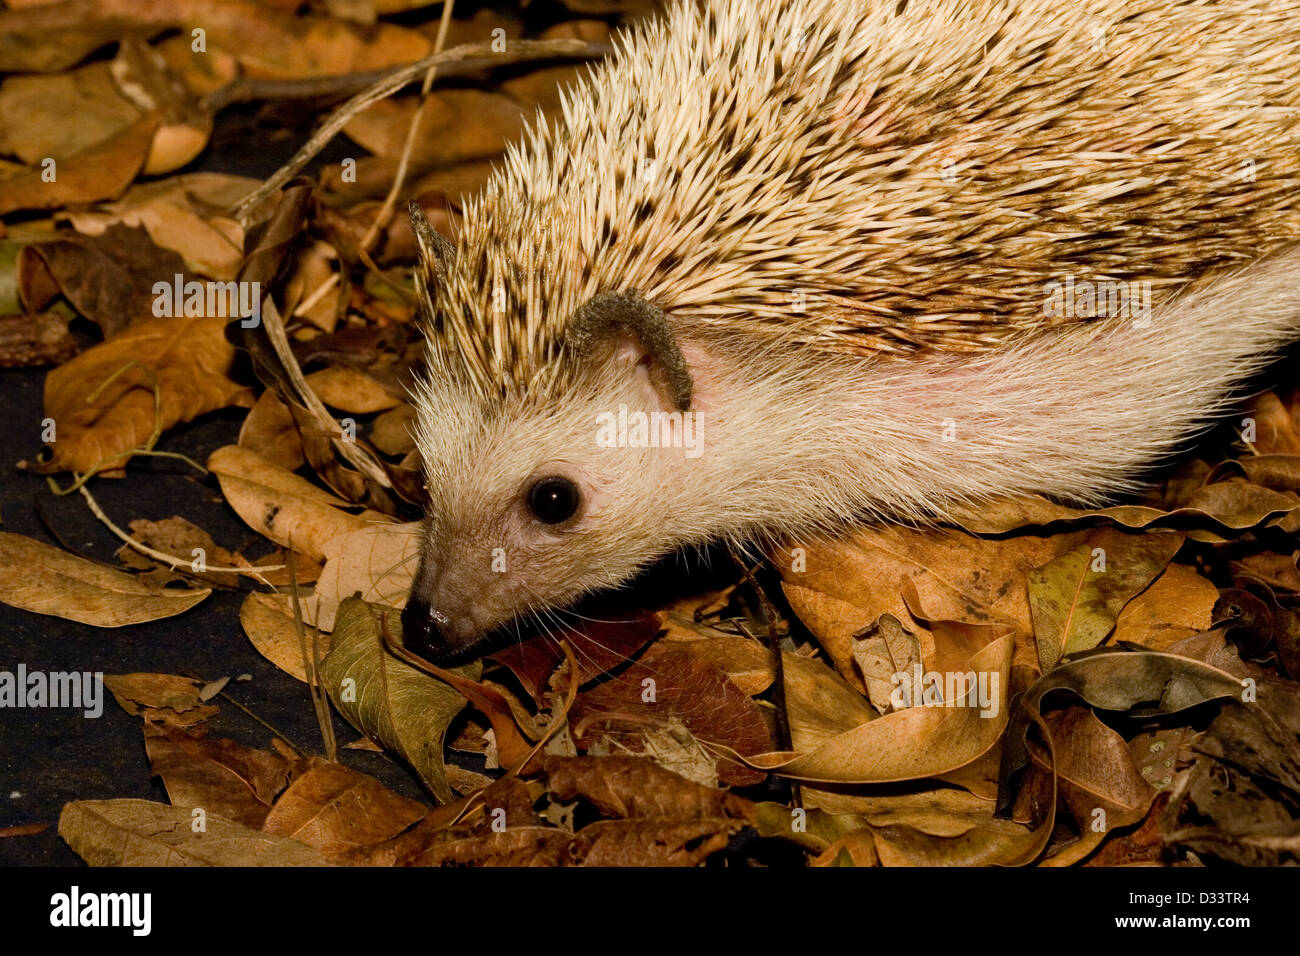 A Hedgehog foraging in leaf litter - Stock Image